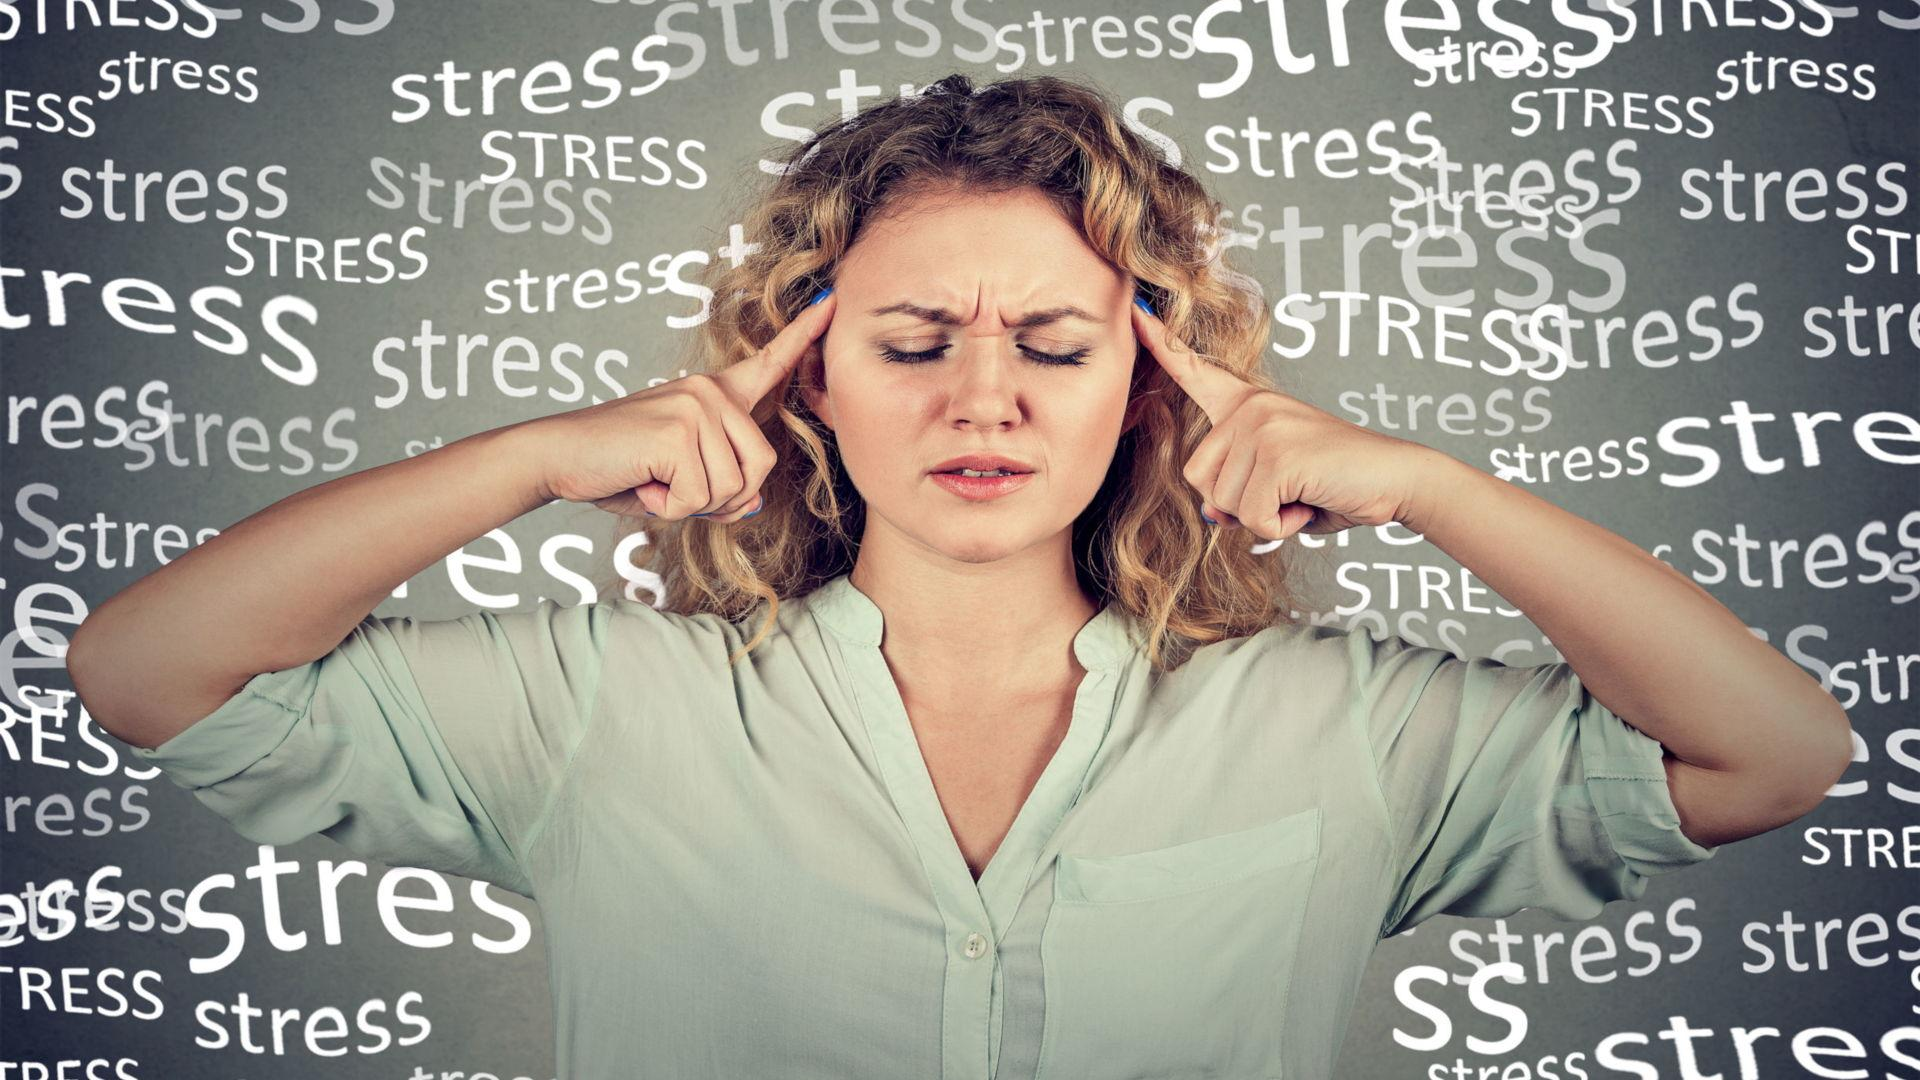 oung Woman Looking Stressed With The Word Stress Written Behind Her